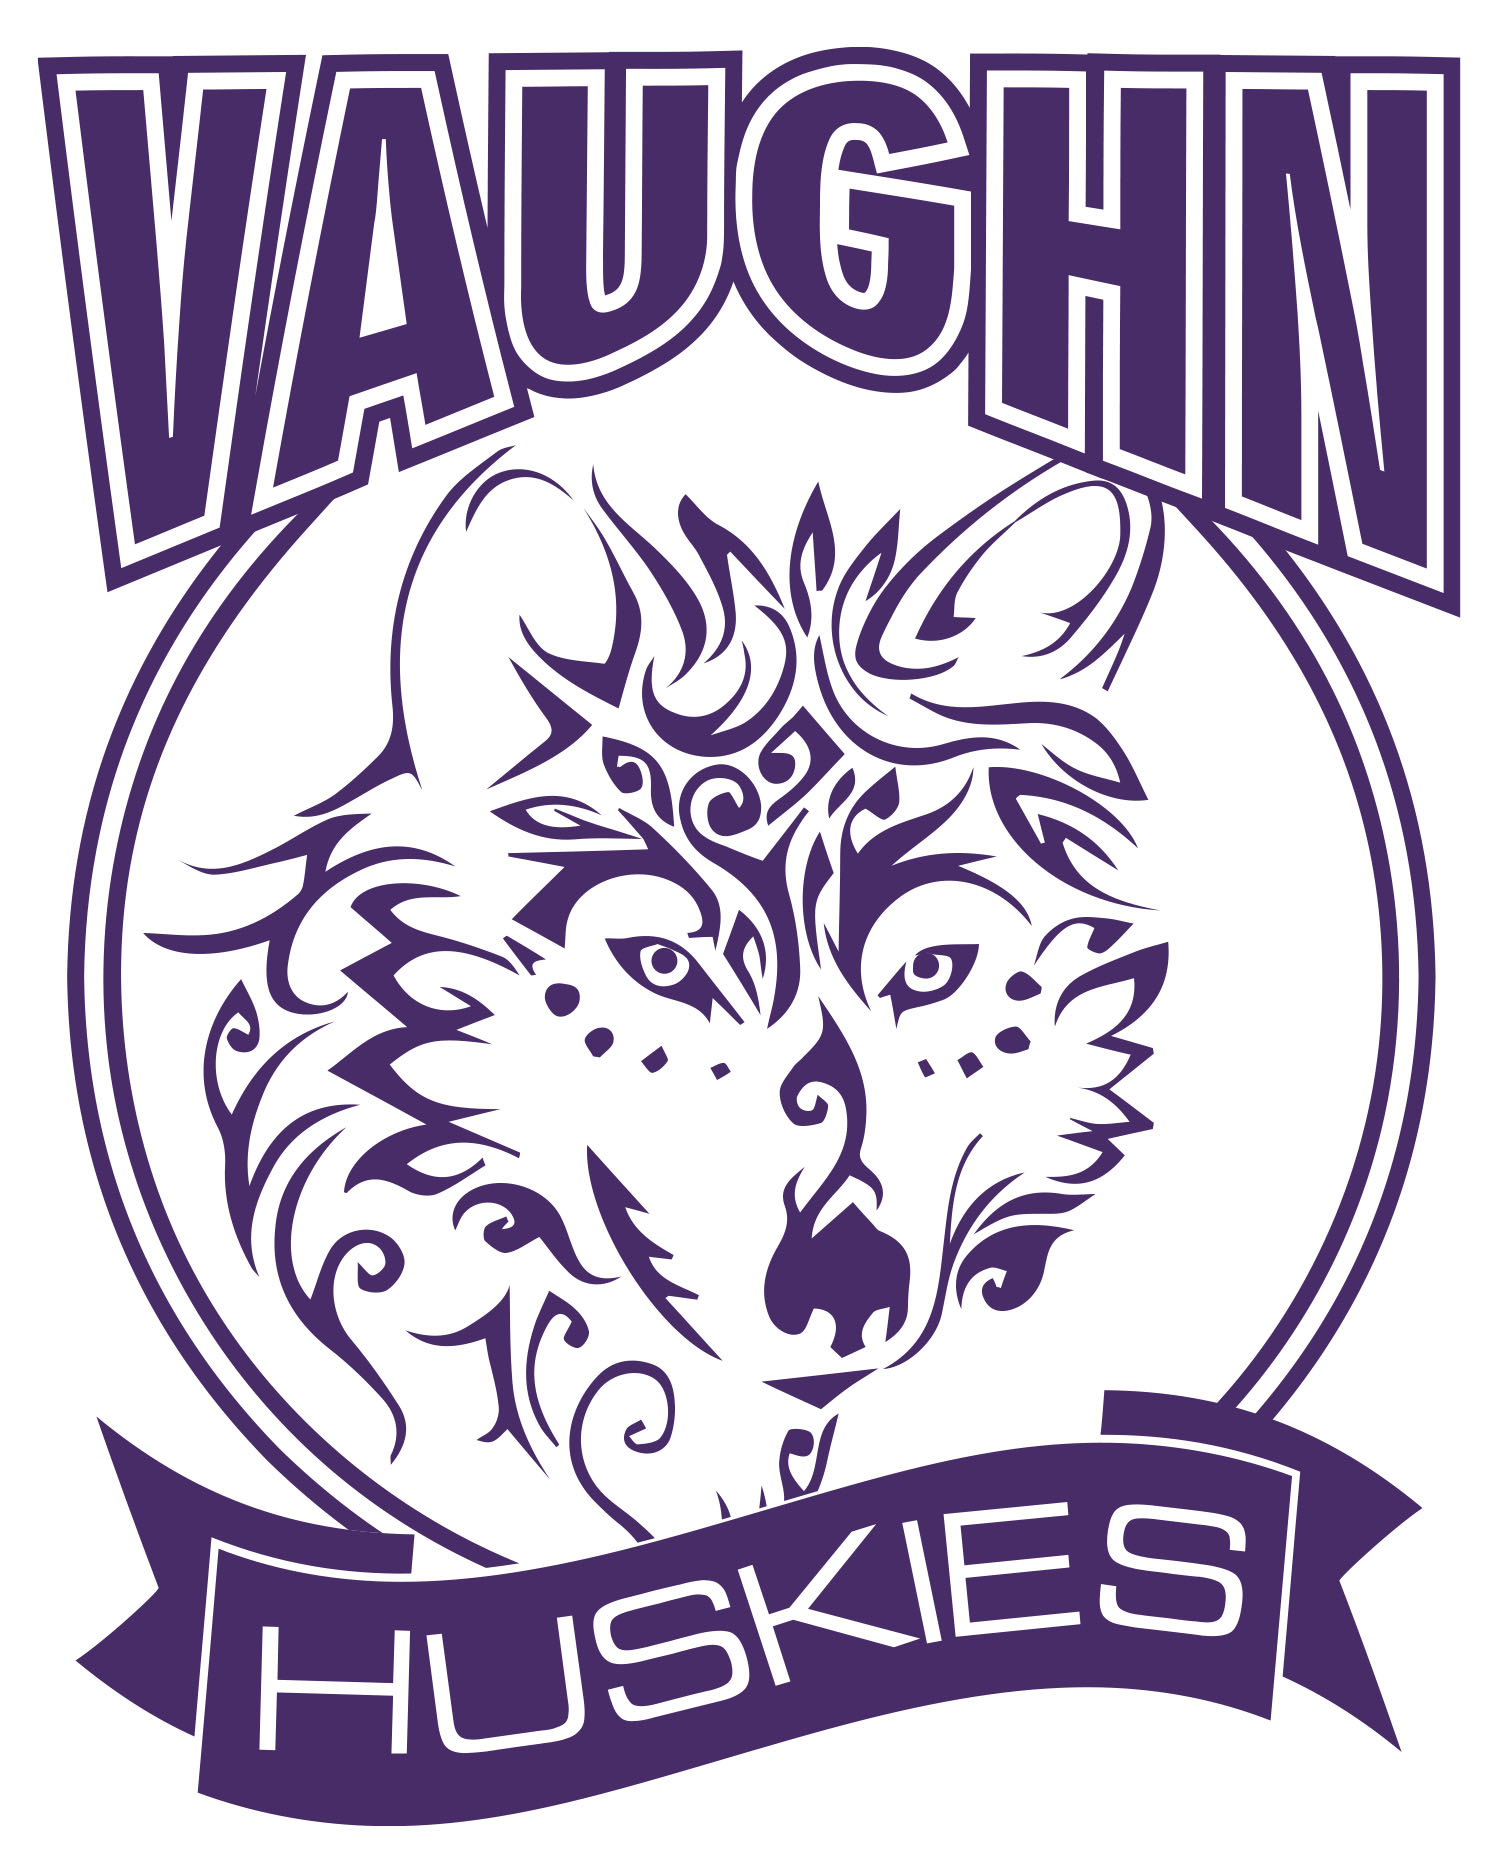 Purple Vaughn Husky